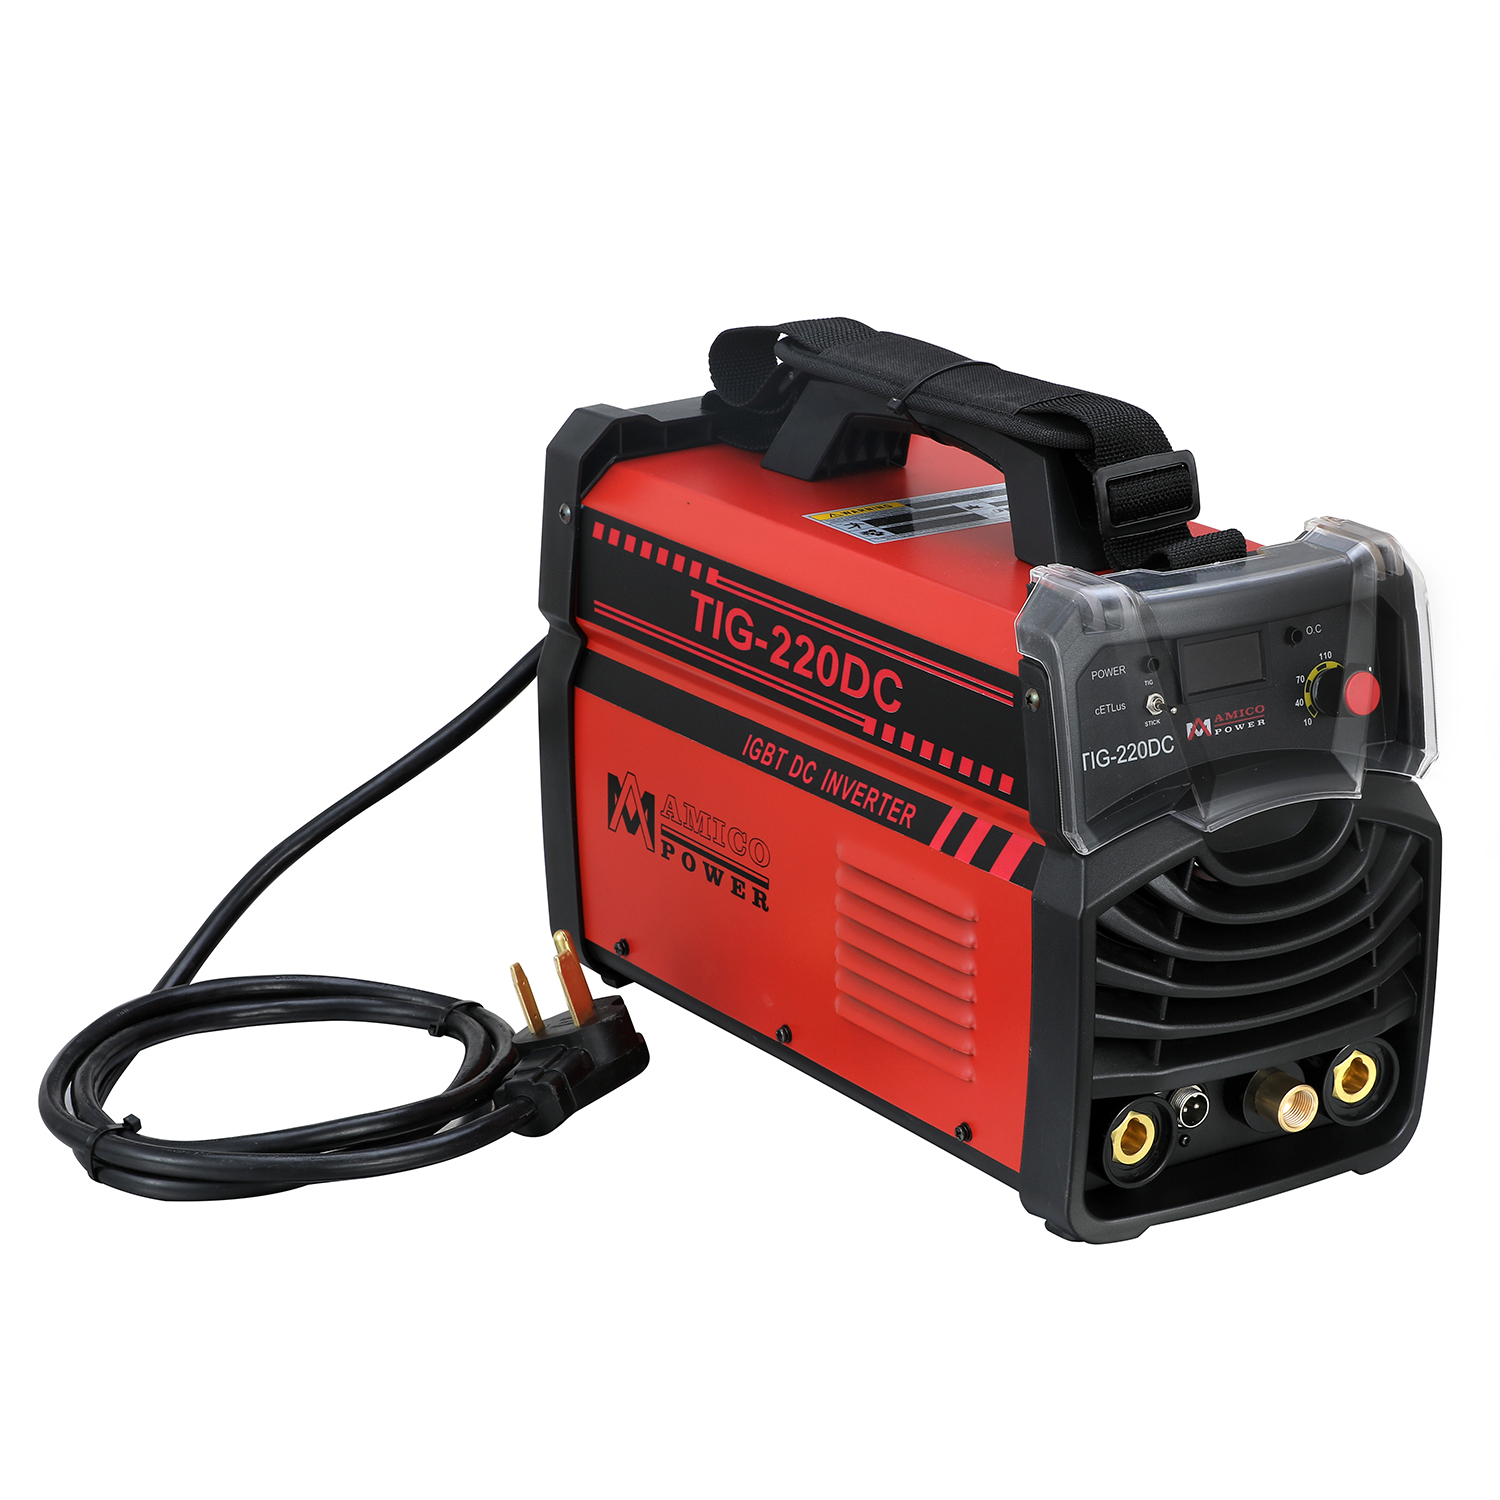 Amico TIG-220DC 220 Amp TIG Torch Stick Arc 2-in-1 Welder 230/110V Dual Voltage Input Welding